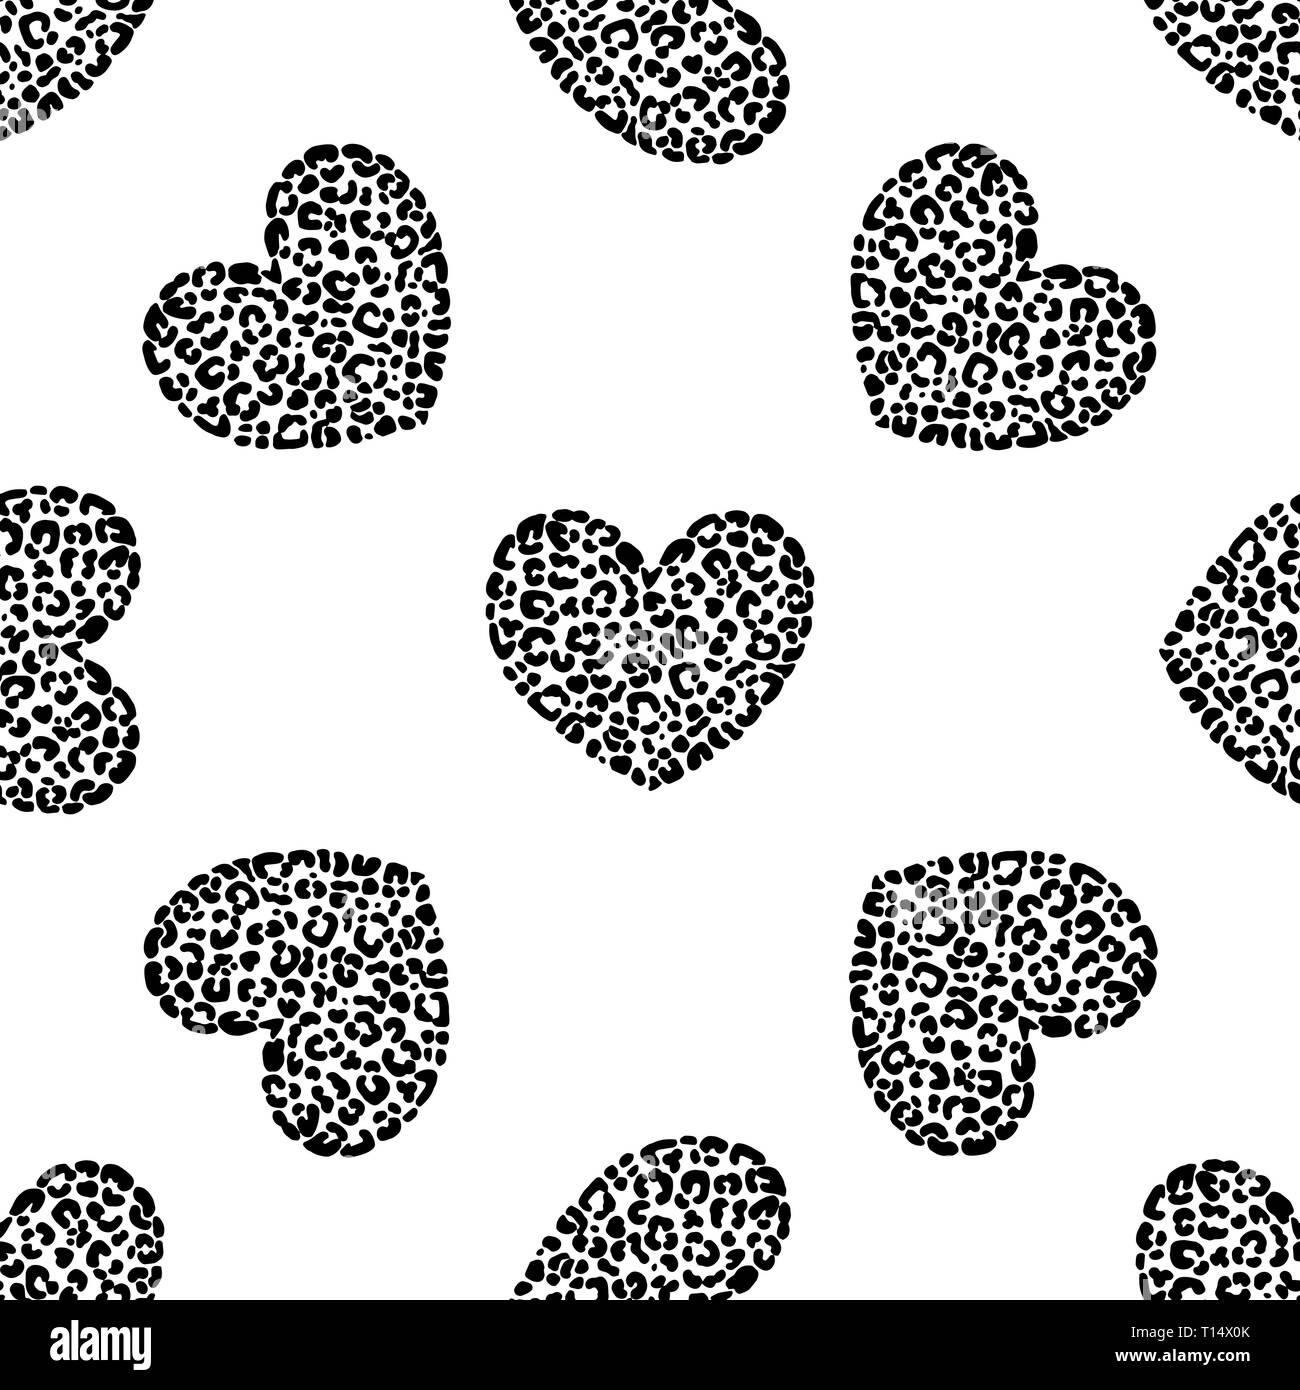 f605dc8bc474 Seamless pattern of hand drawn sketch style hearts with leopard texture  isolated on white background.